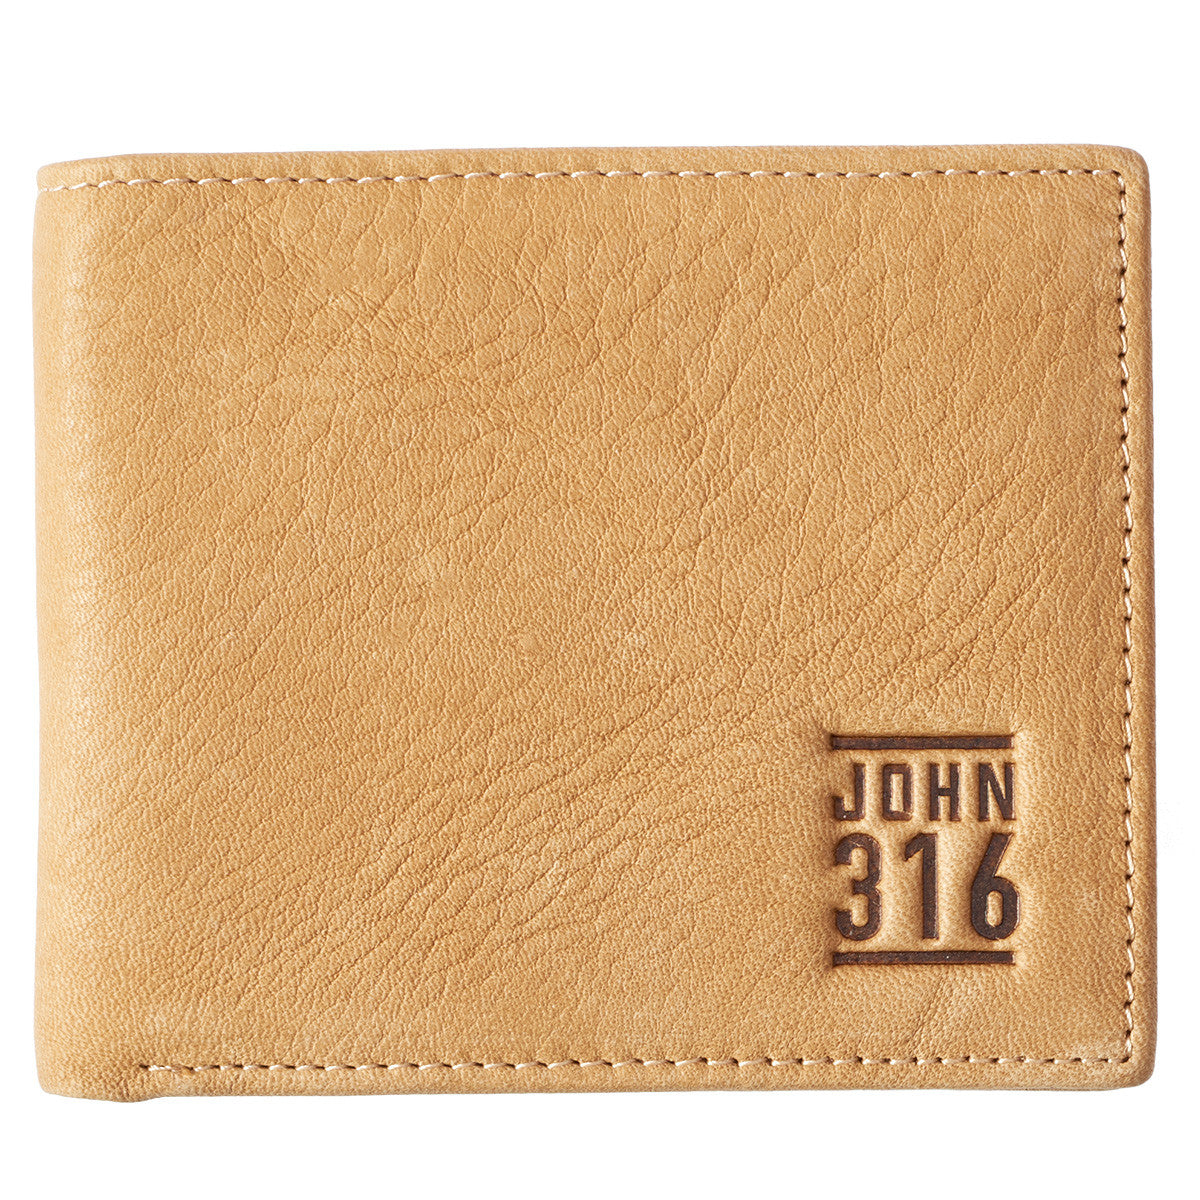 ROCKONLINE | New Creation Church | Joseph Prince | Leather Wallet | Men Wallets | Men Fashion | Men Accessories  | Youth | Teen | Boys | Scriptures | John 3:16 | Leather Accessories | Christian Gifts | Christian Art Gifts | Rock Bookshop | Rock Bookstore | Star Vista | Free Delivery for Singapore Orders above $50.